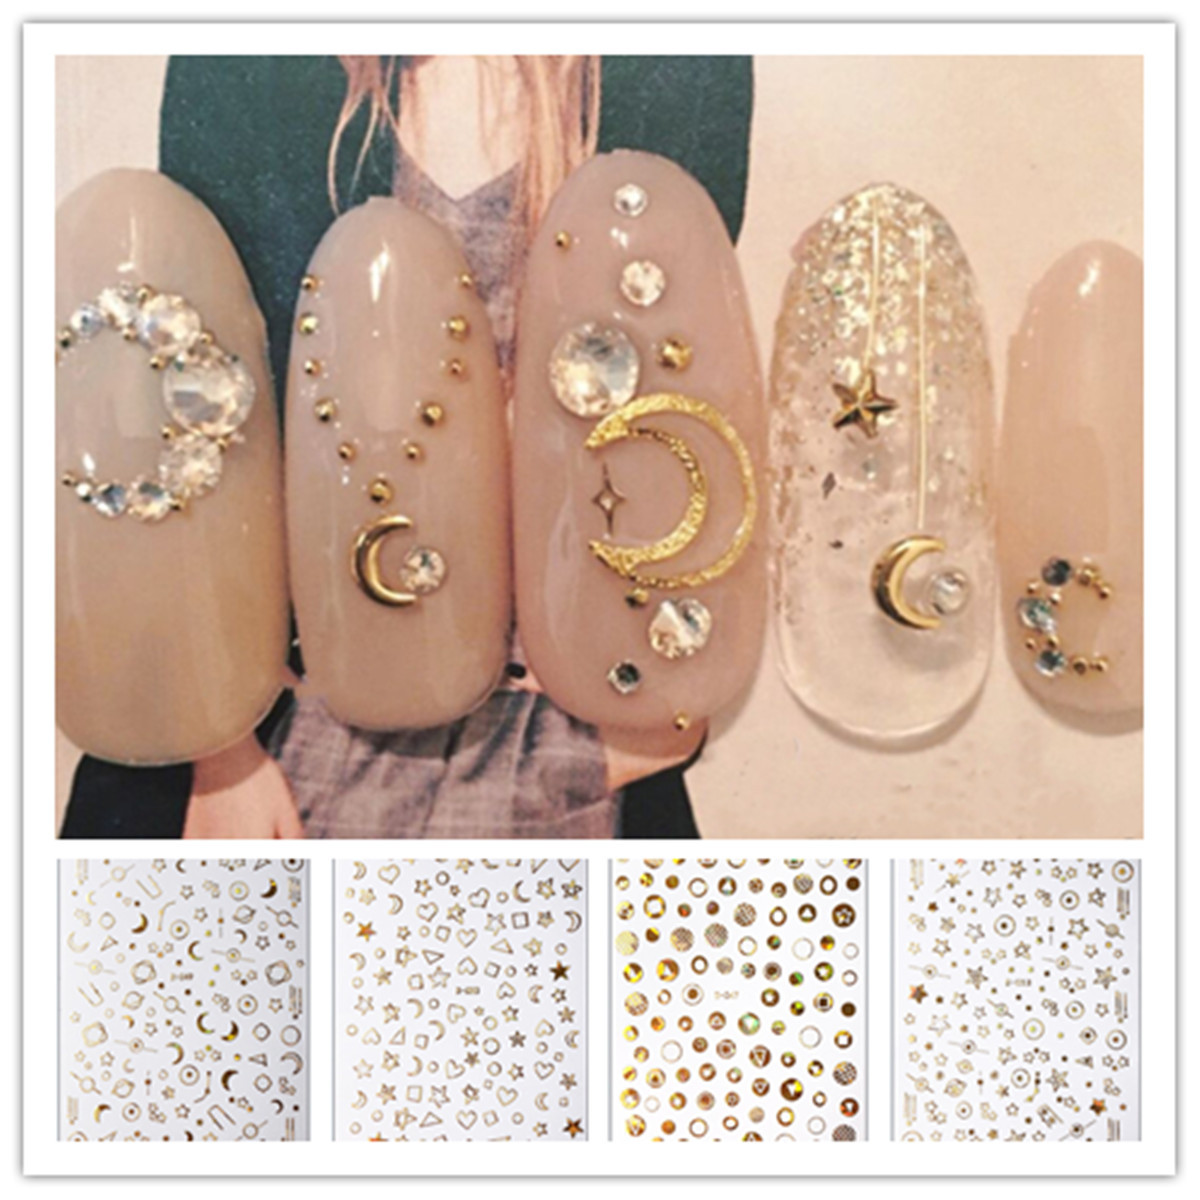 D044-055 Gold And Silver 3D Suspender Strap Glue Gold And Silver Shiny Nail Sticker Nail Polish Star Manicure Stickers